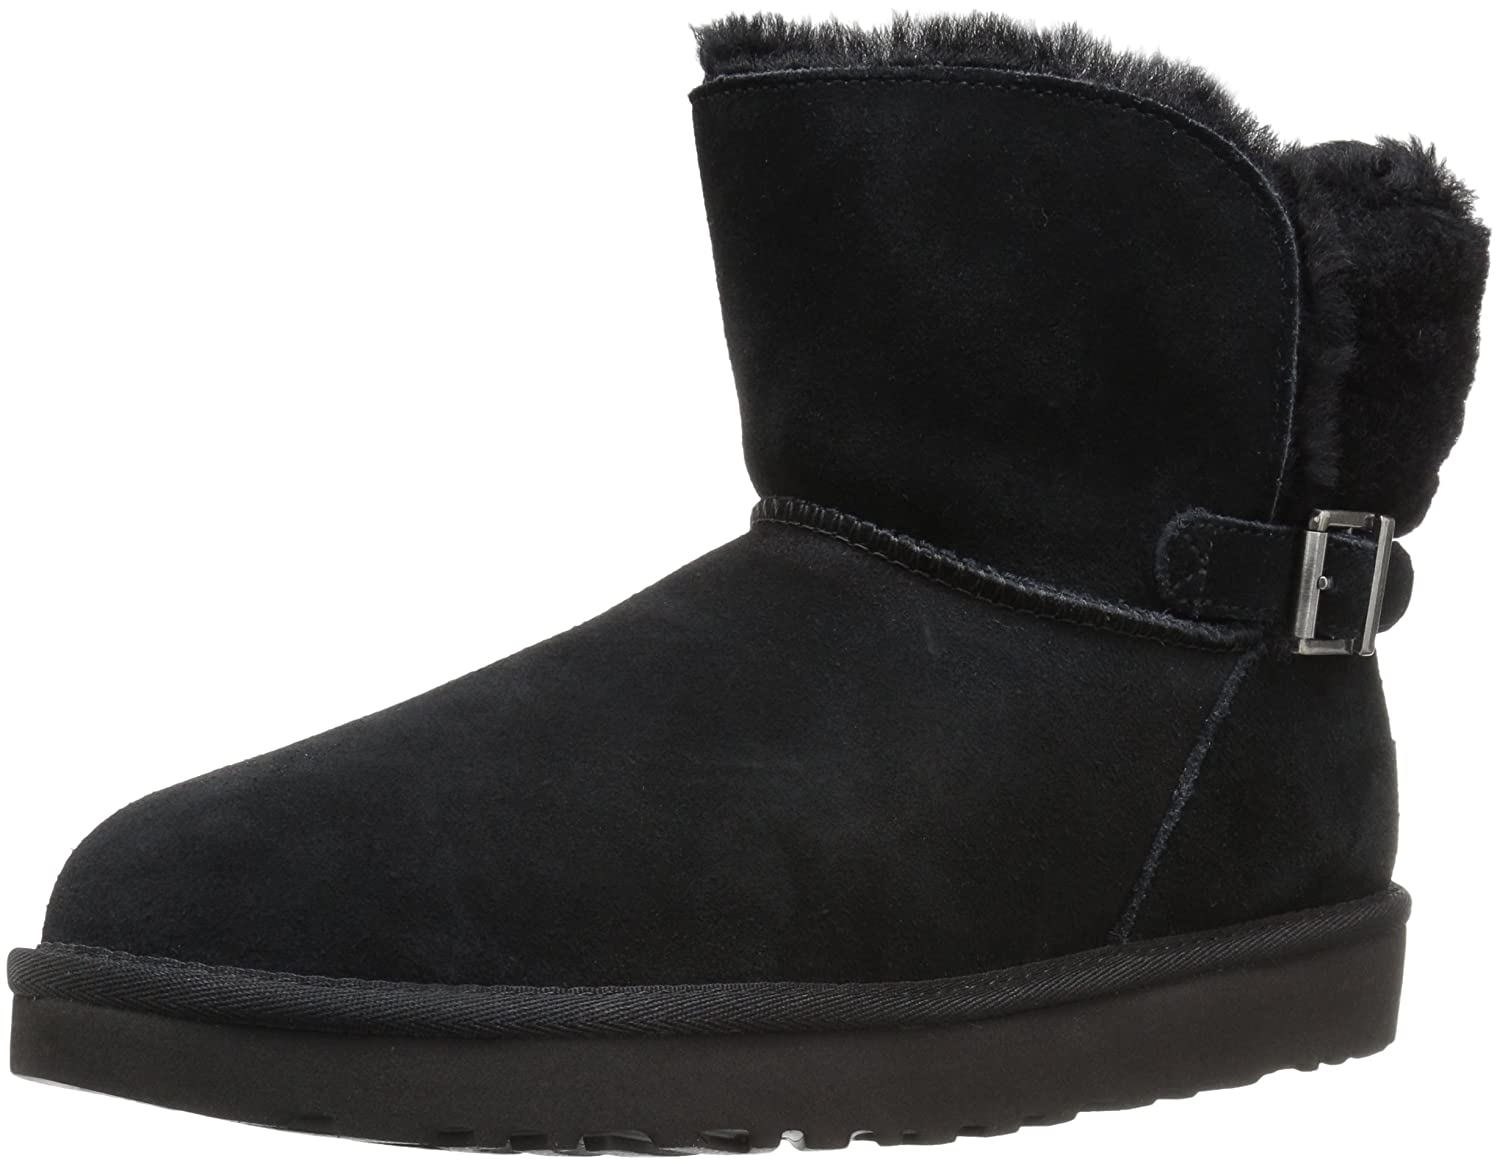 UGG Catica Women's Pull on Boots Black | Products in 2019